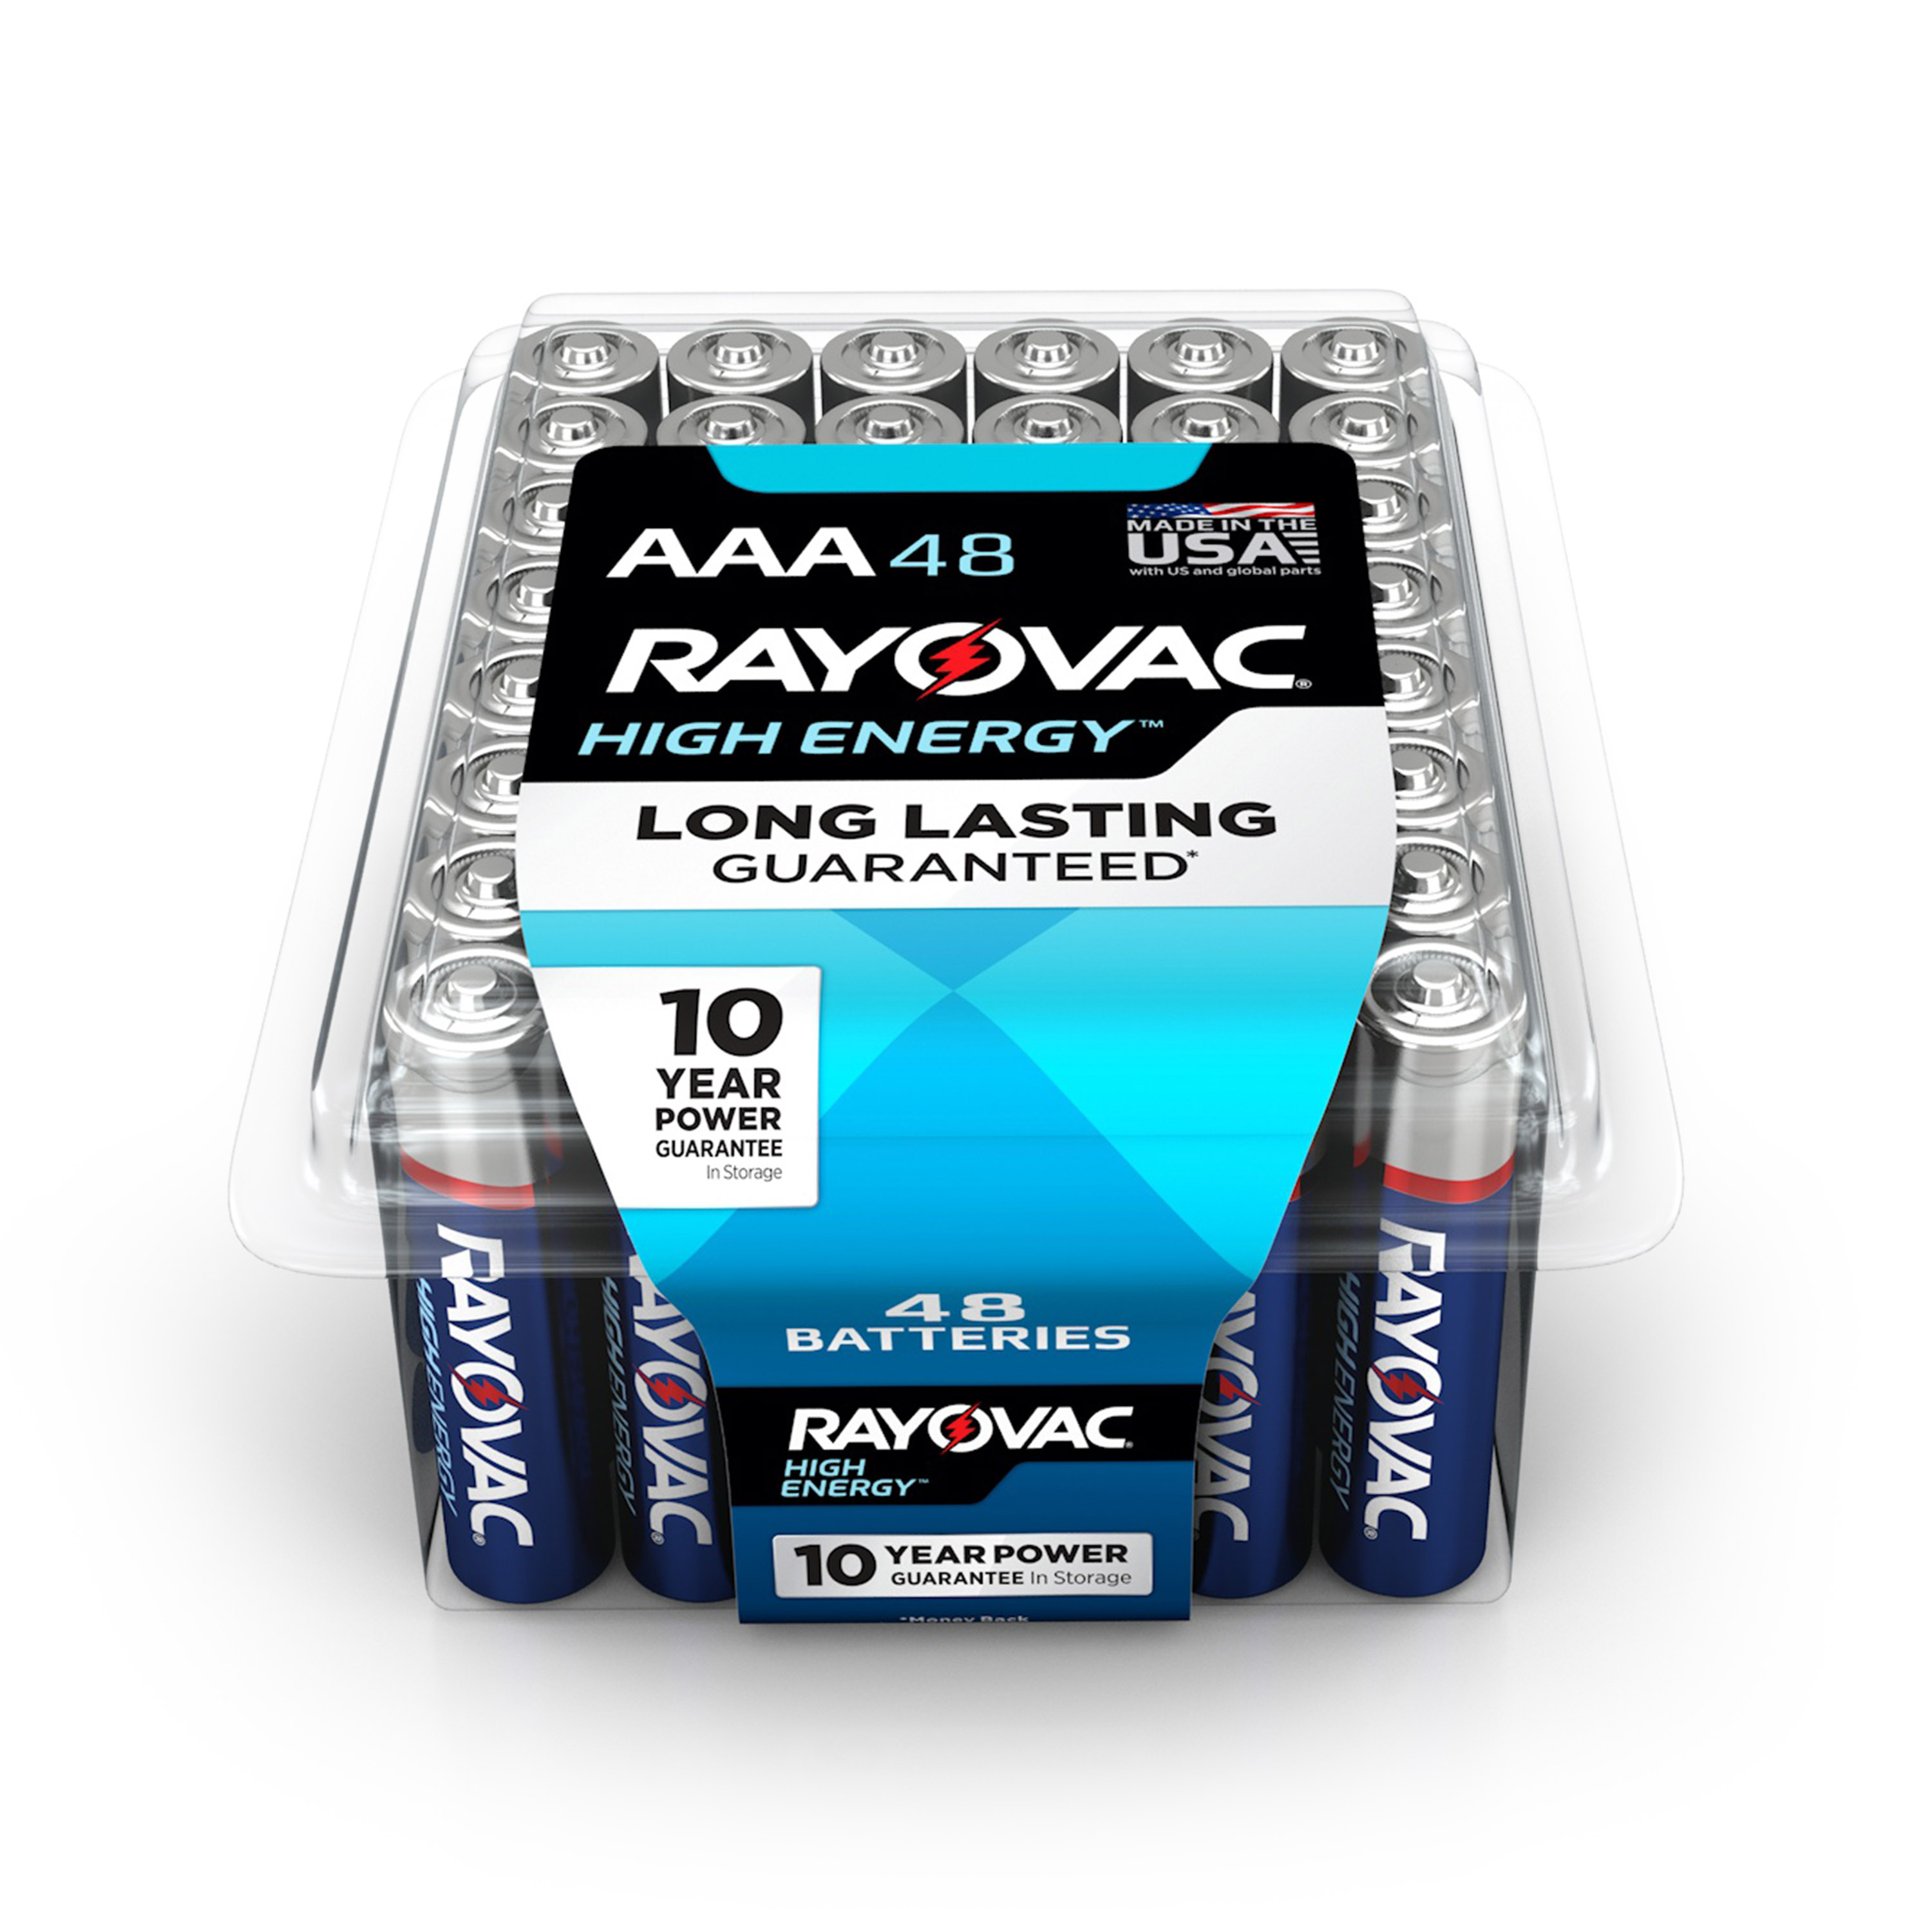 Rayovac High Energy Alkaline AAA Batteries, 48 Count